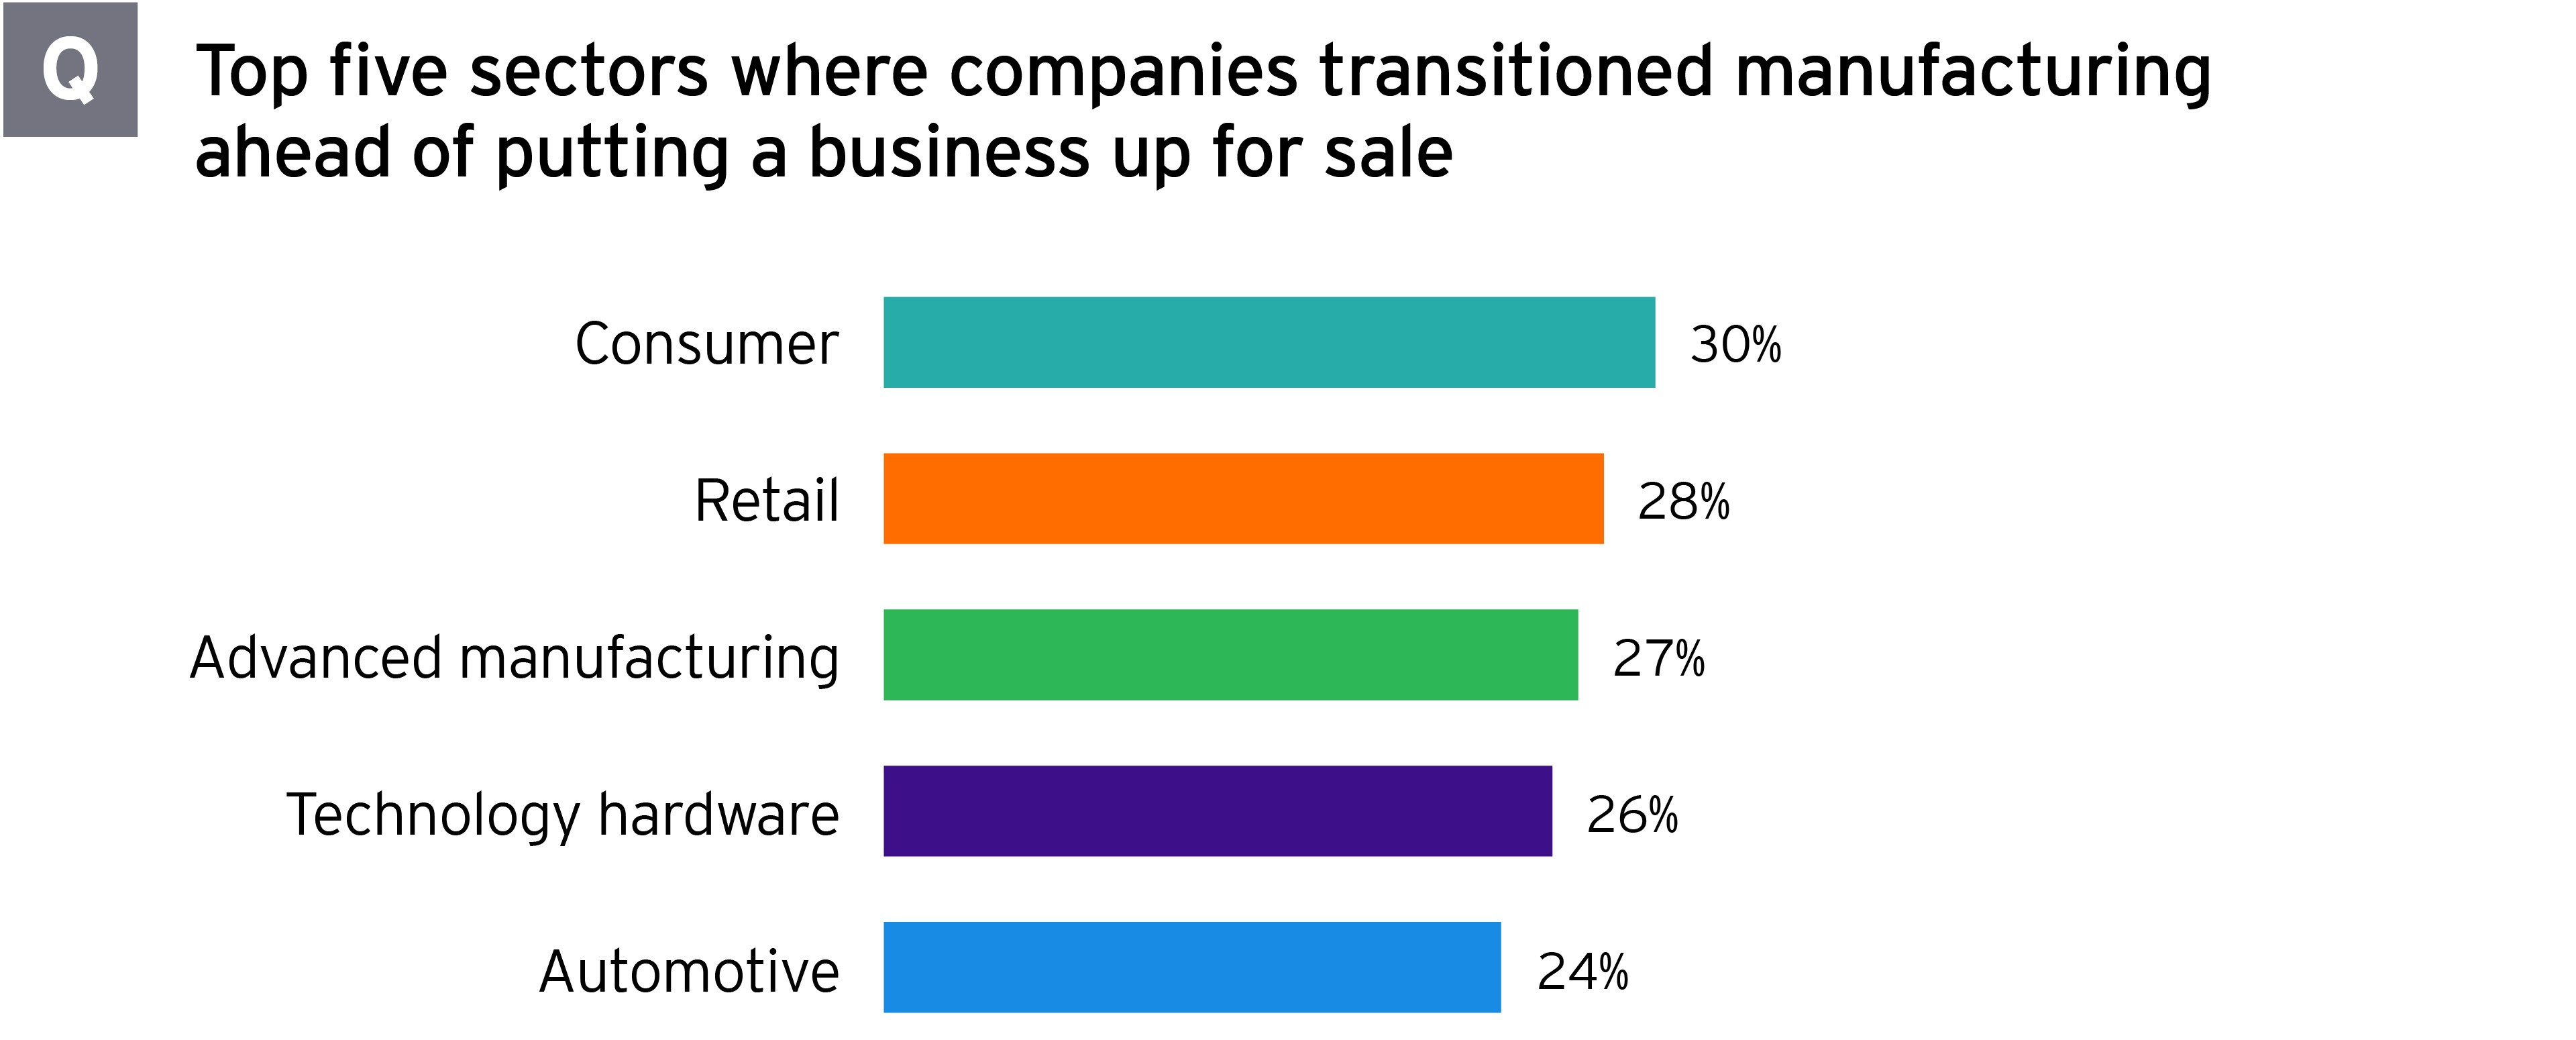 Top five sectors where companies transitioned manufacturing ahead of a sale